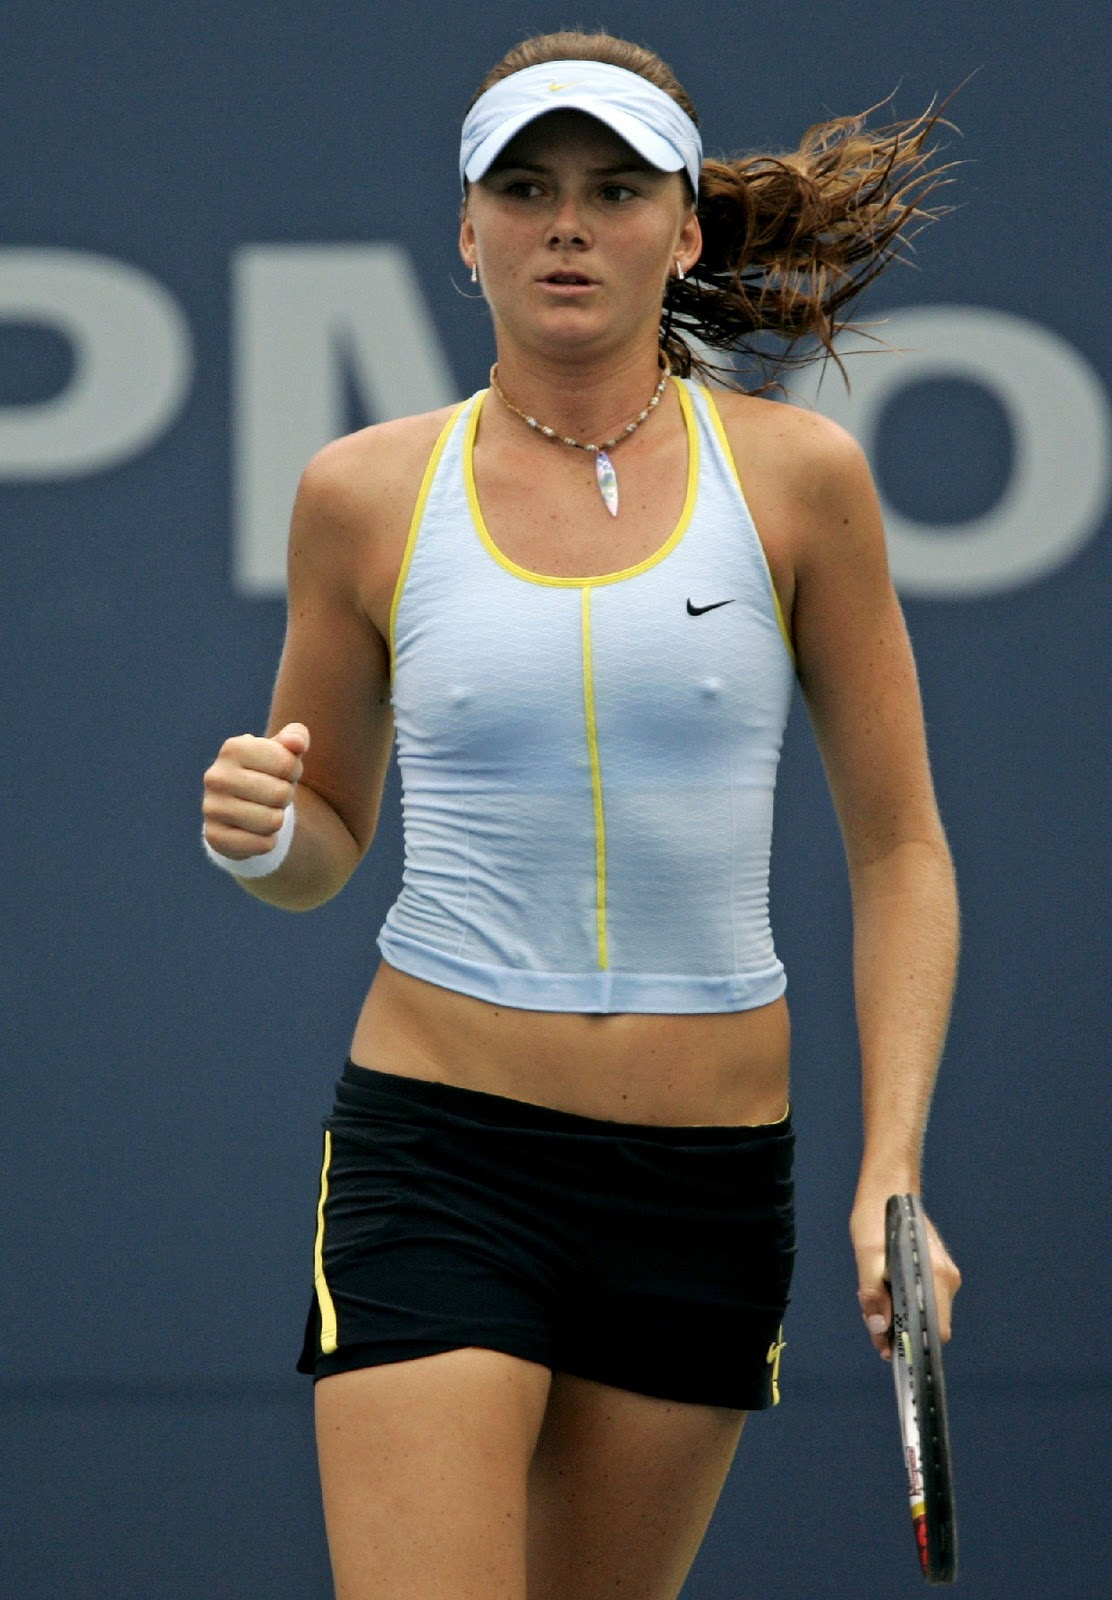 Can women tennis players nip slip congratulate, your